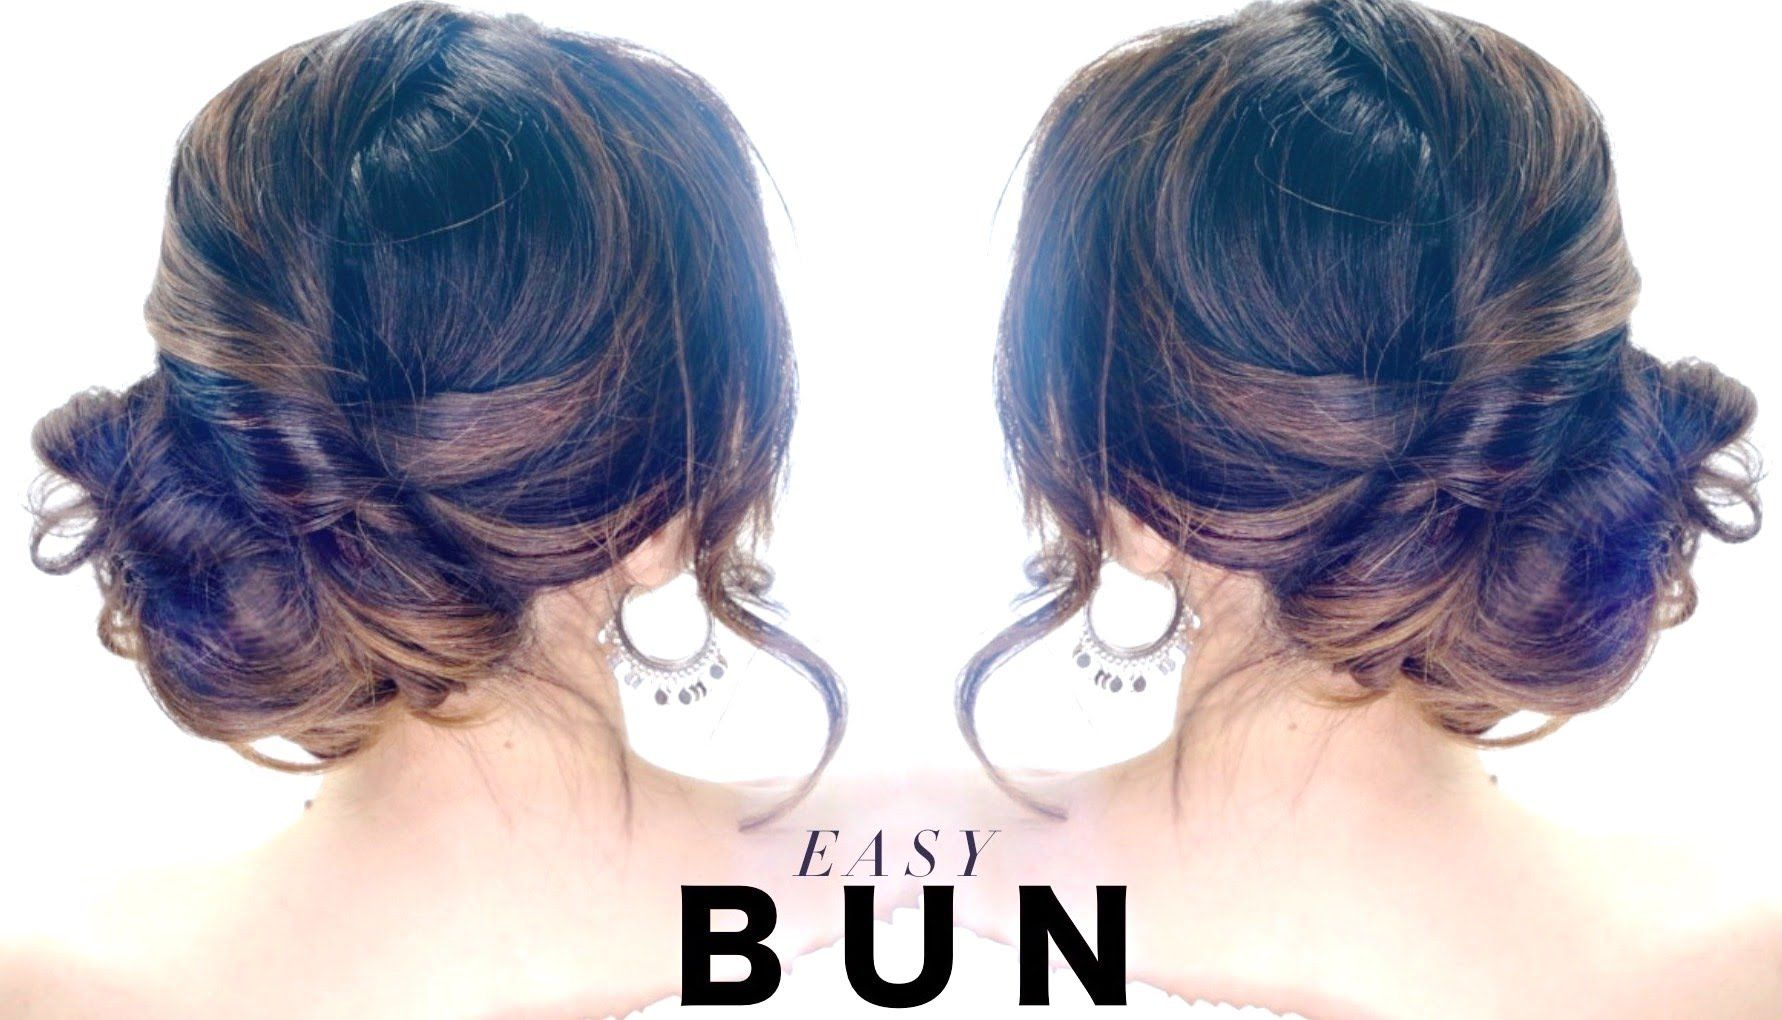 3 Minute Elegant Side Bun Hairstyle Easy Summer Updo Hairstyles Side Bun Hairstyles Easy Bun Hairstyles Medium Hair Styles